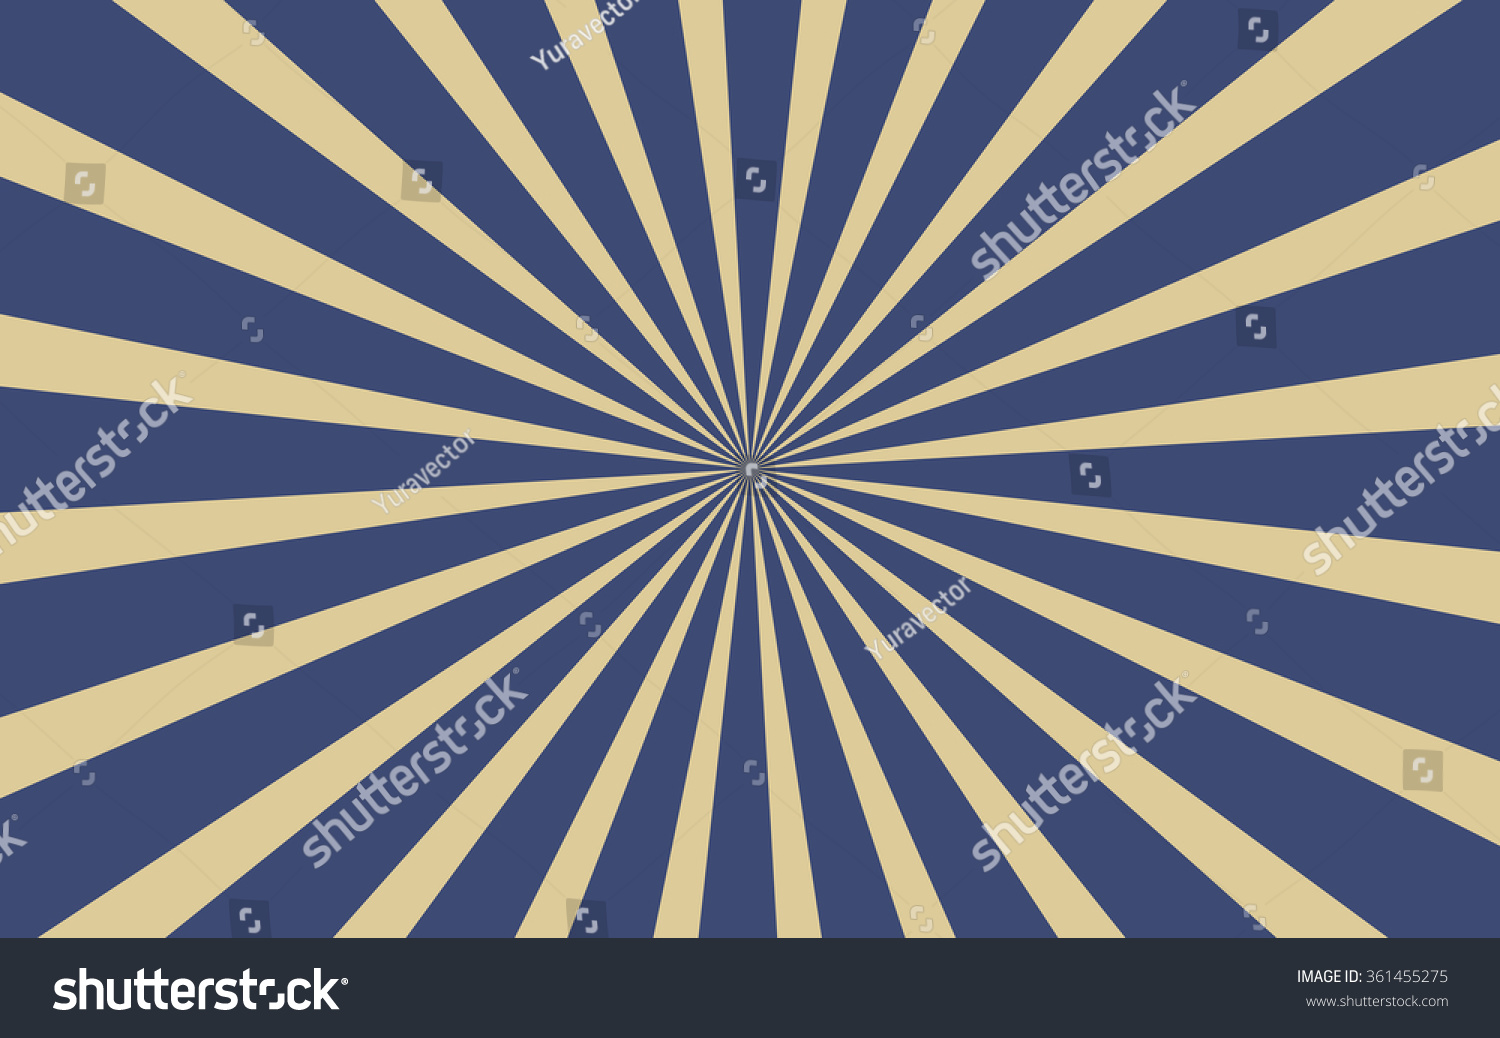 Vintage Blue Radial Lines Background Rectangle Stock Vector ...